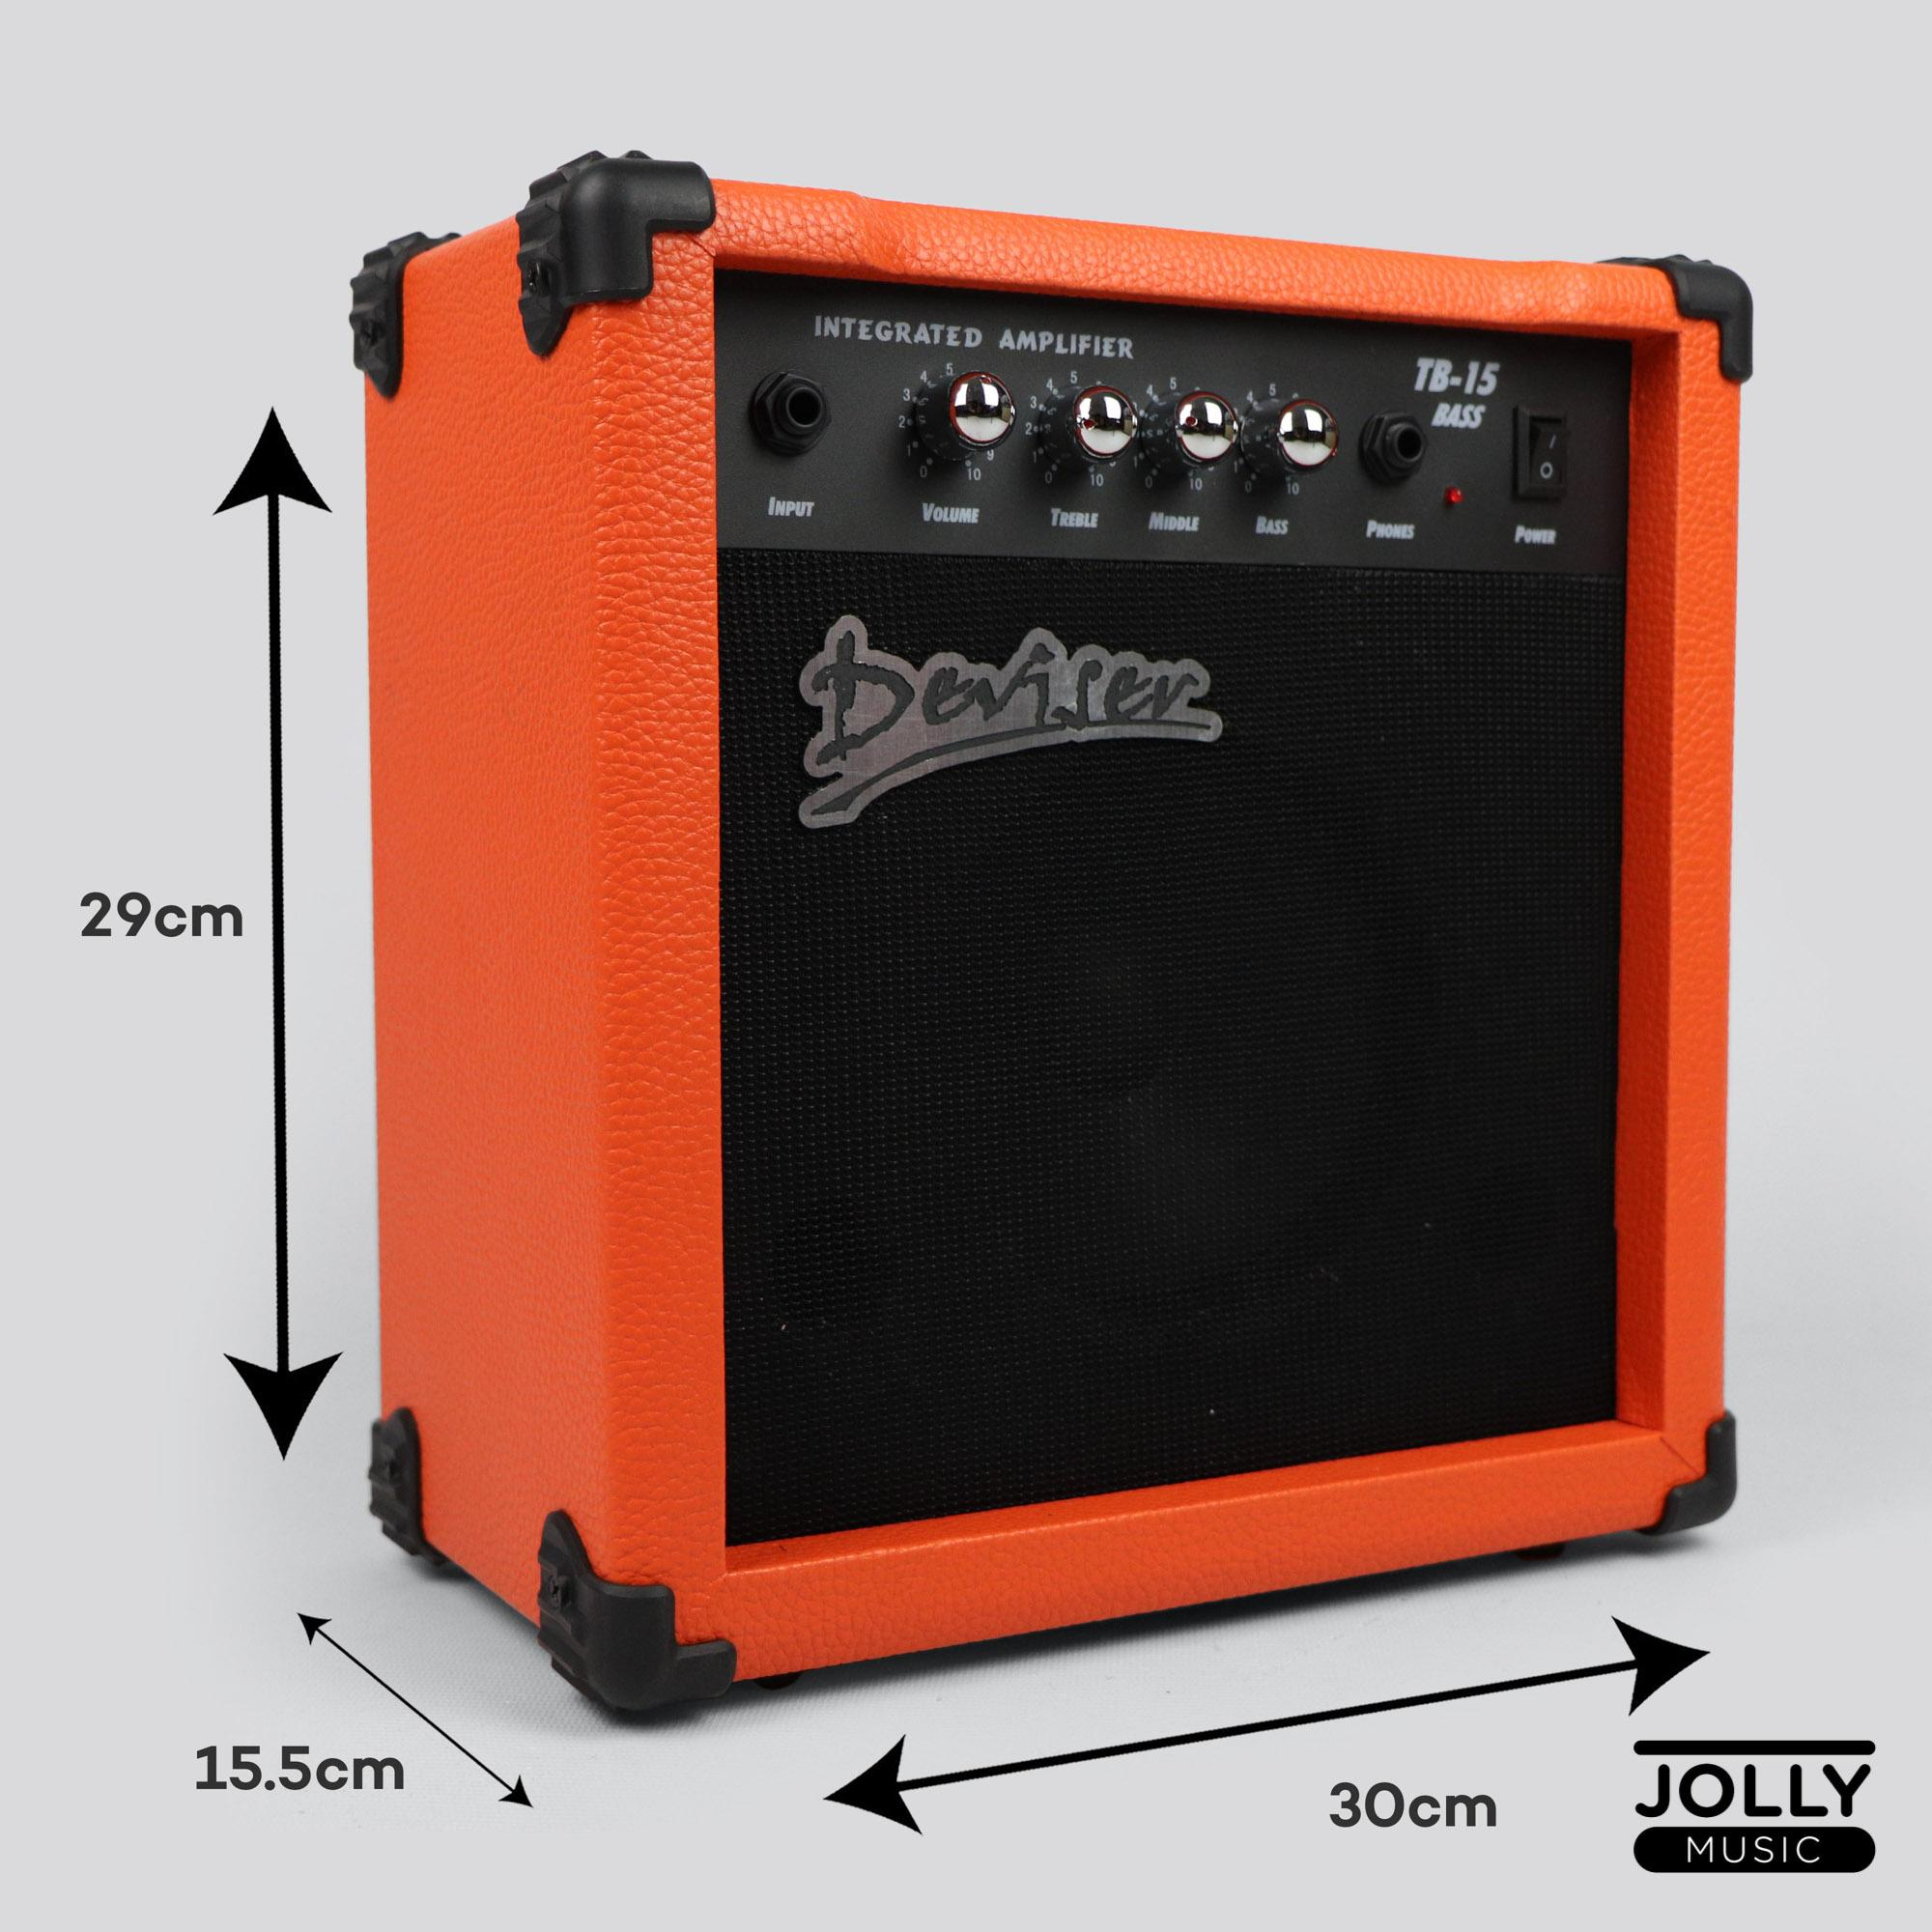 Guitar Amp for sale - Electric Guitar Amp best seller, prices